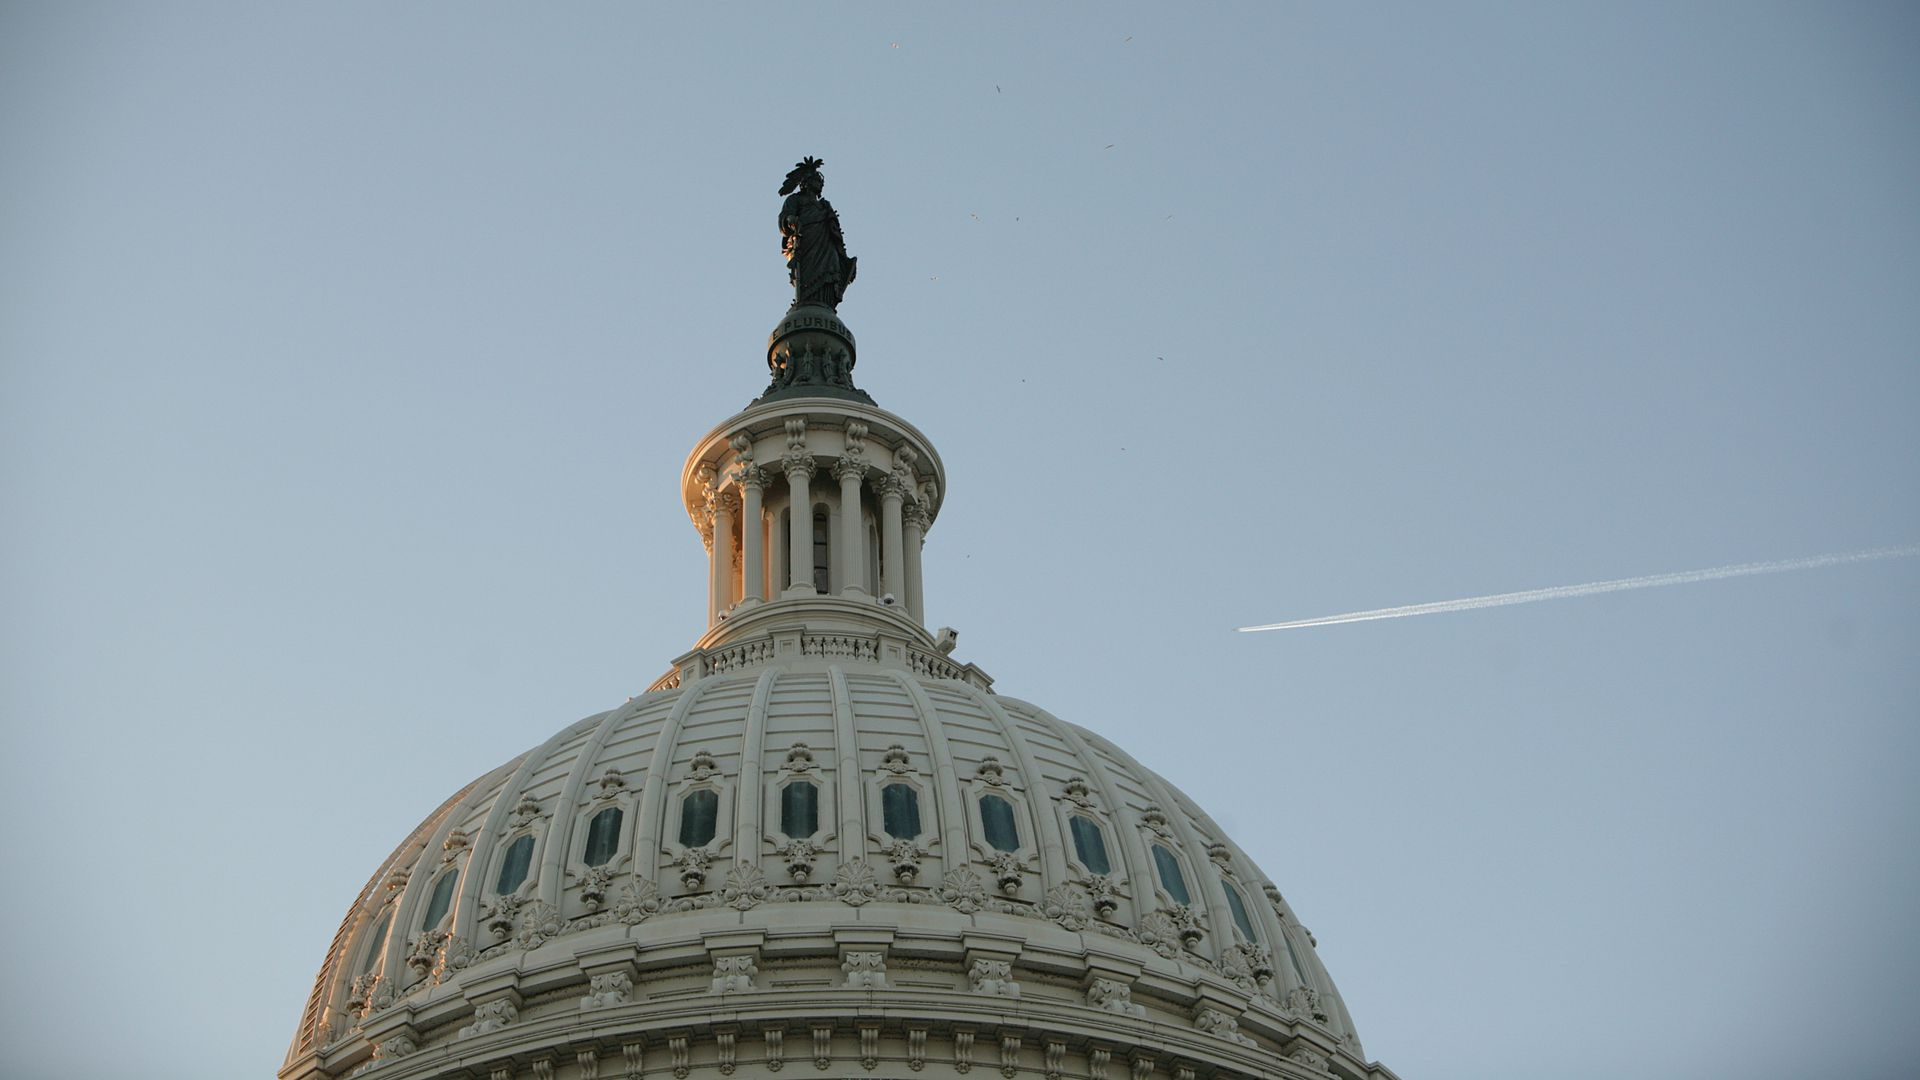 This image is a close-up of the very top of the US Capitol building.